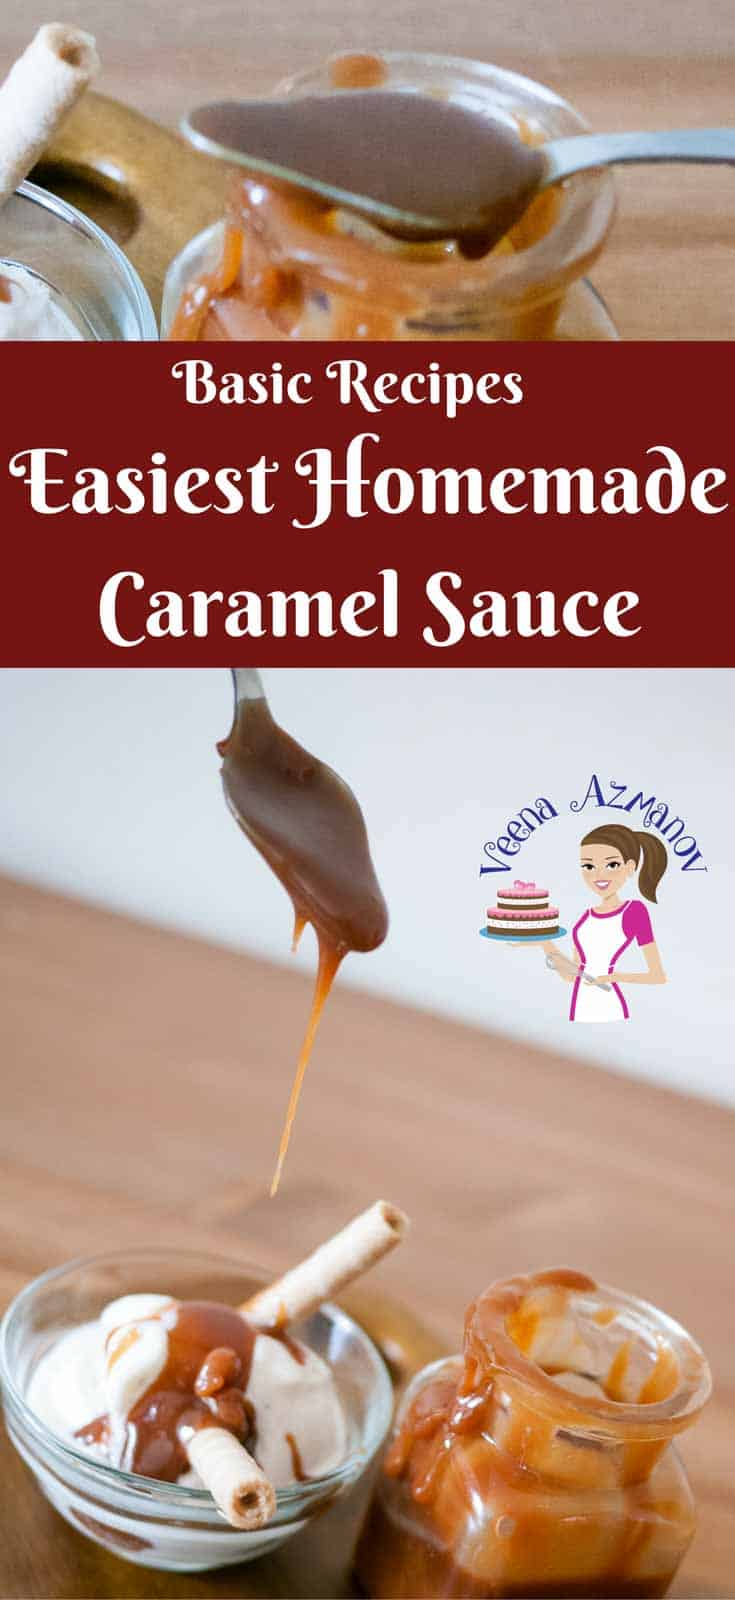 Caramel Sauce is the simplest treat you can use to take a simple dessert and add that extra wow. Making Homemade Caramel Sauce is easier than most people think! It takes about 5 minutes to make one cup caramel with just a sauce pan and wooden spoon.